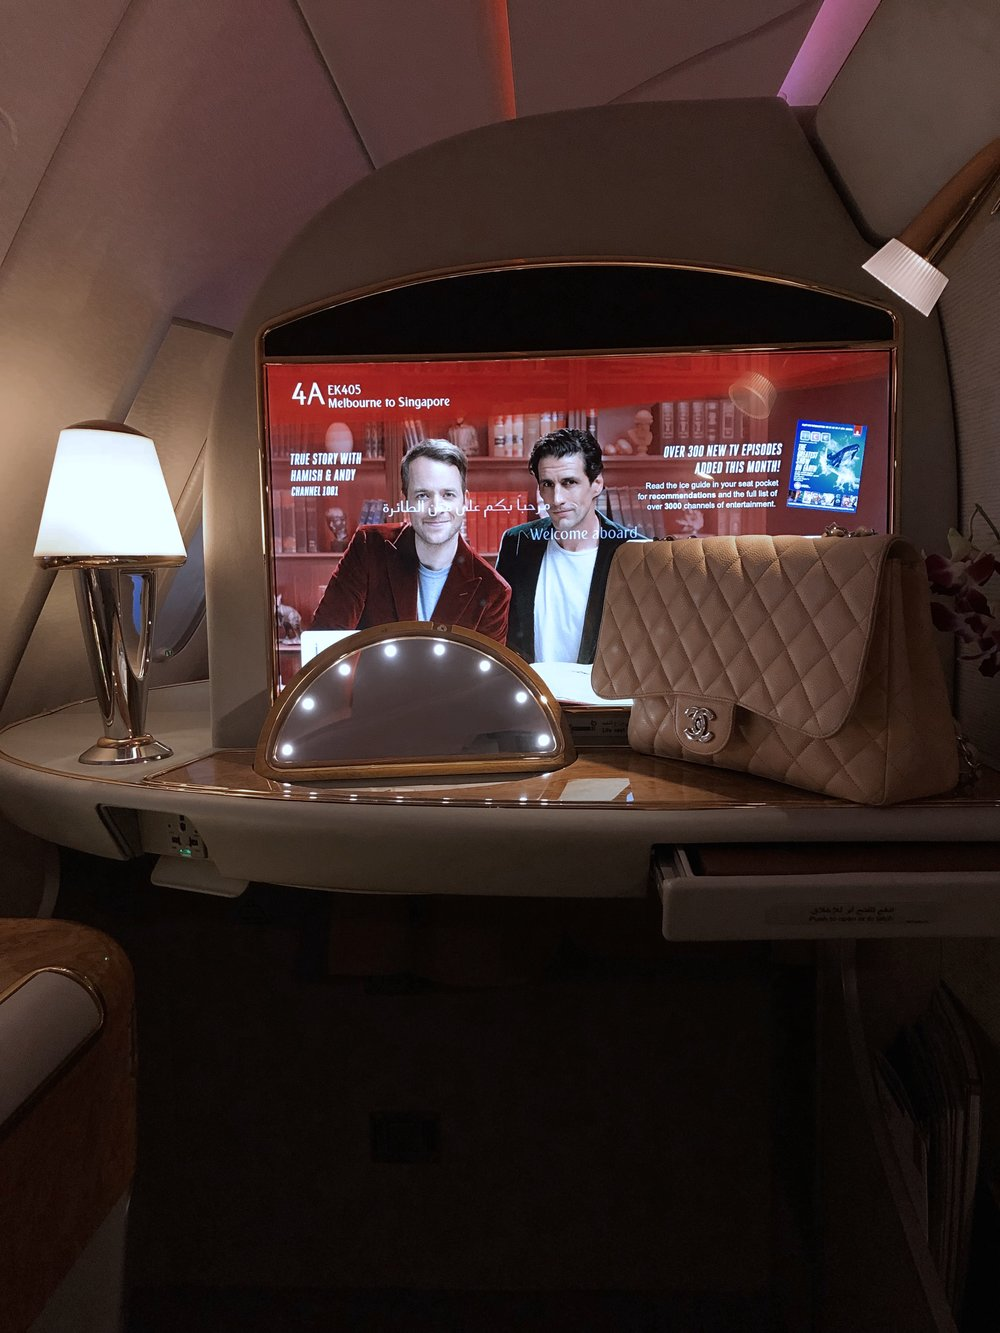 Emirates First Class on www.friendinfashion.com.au